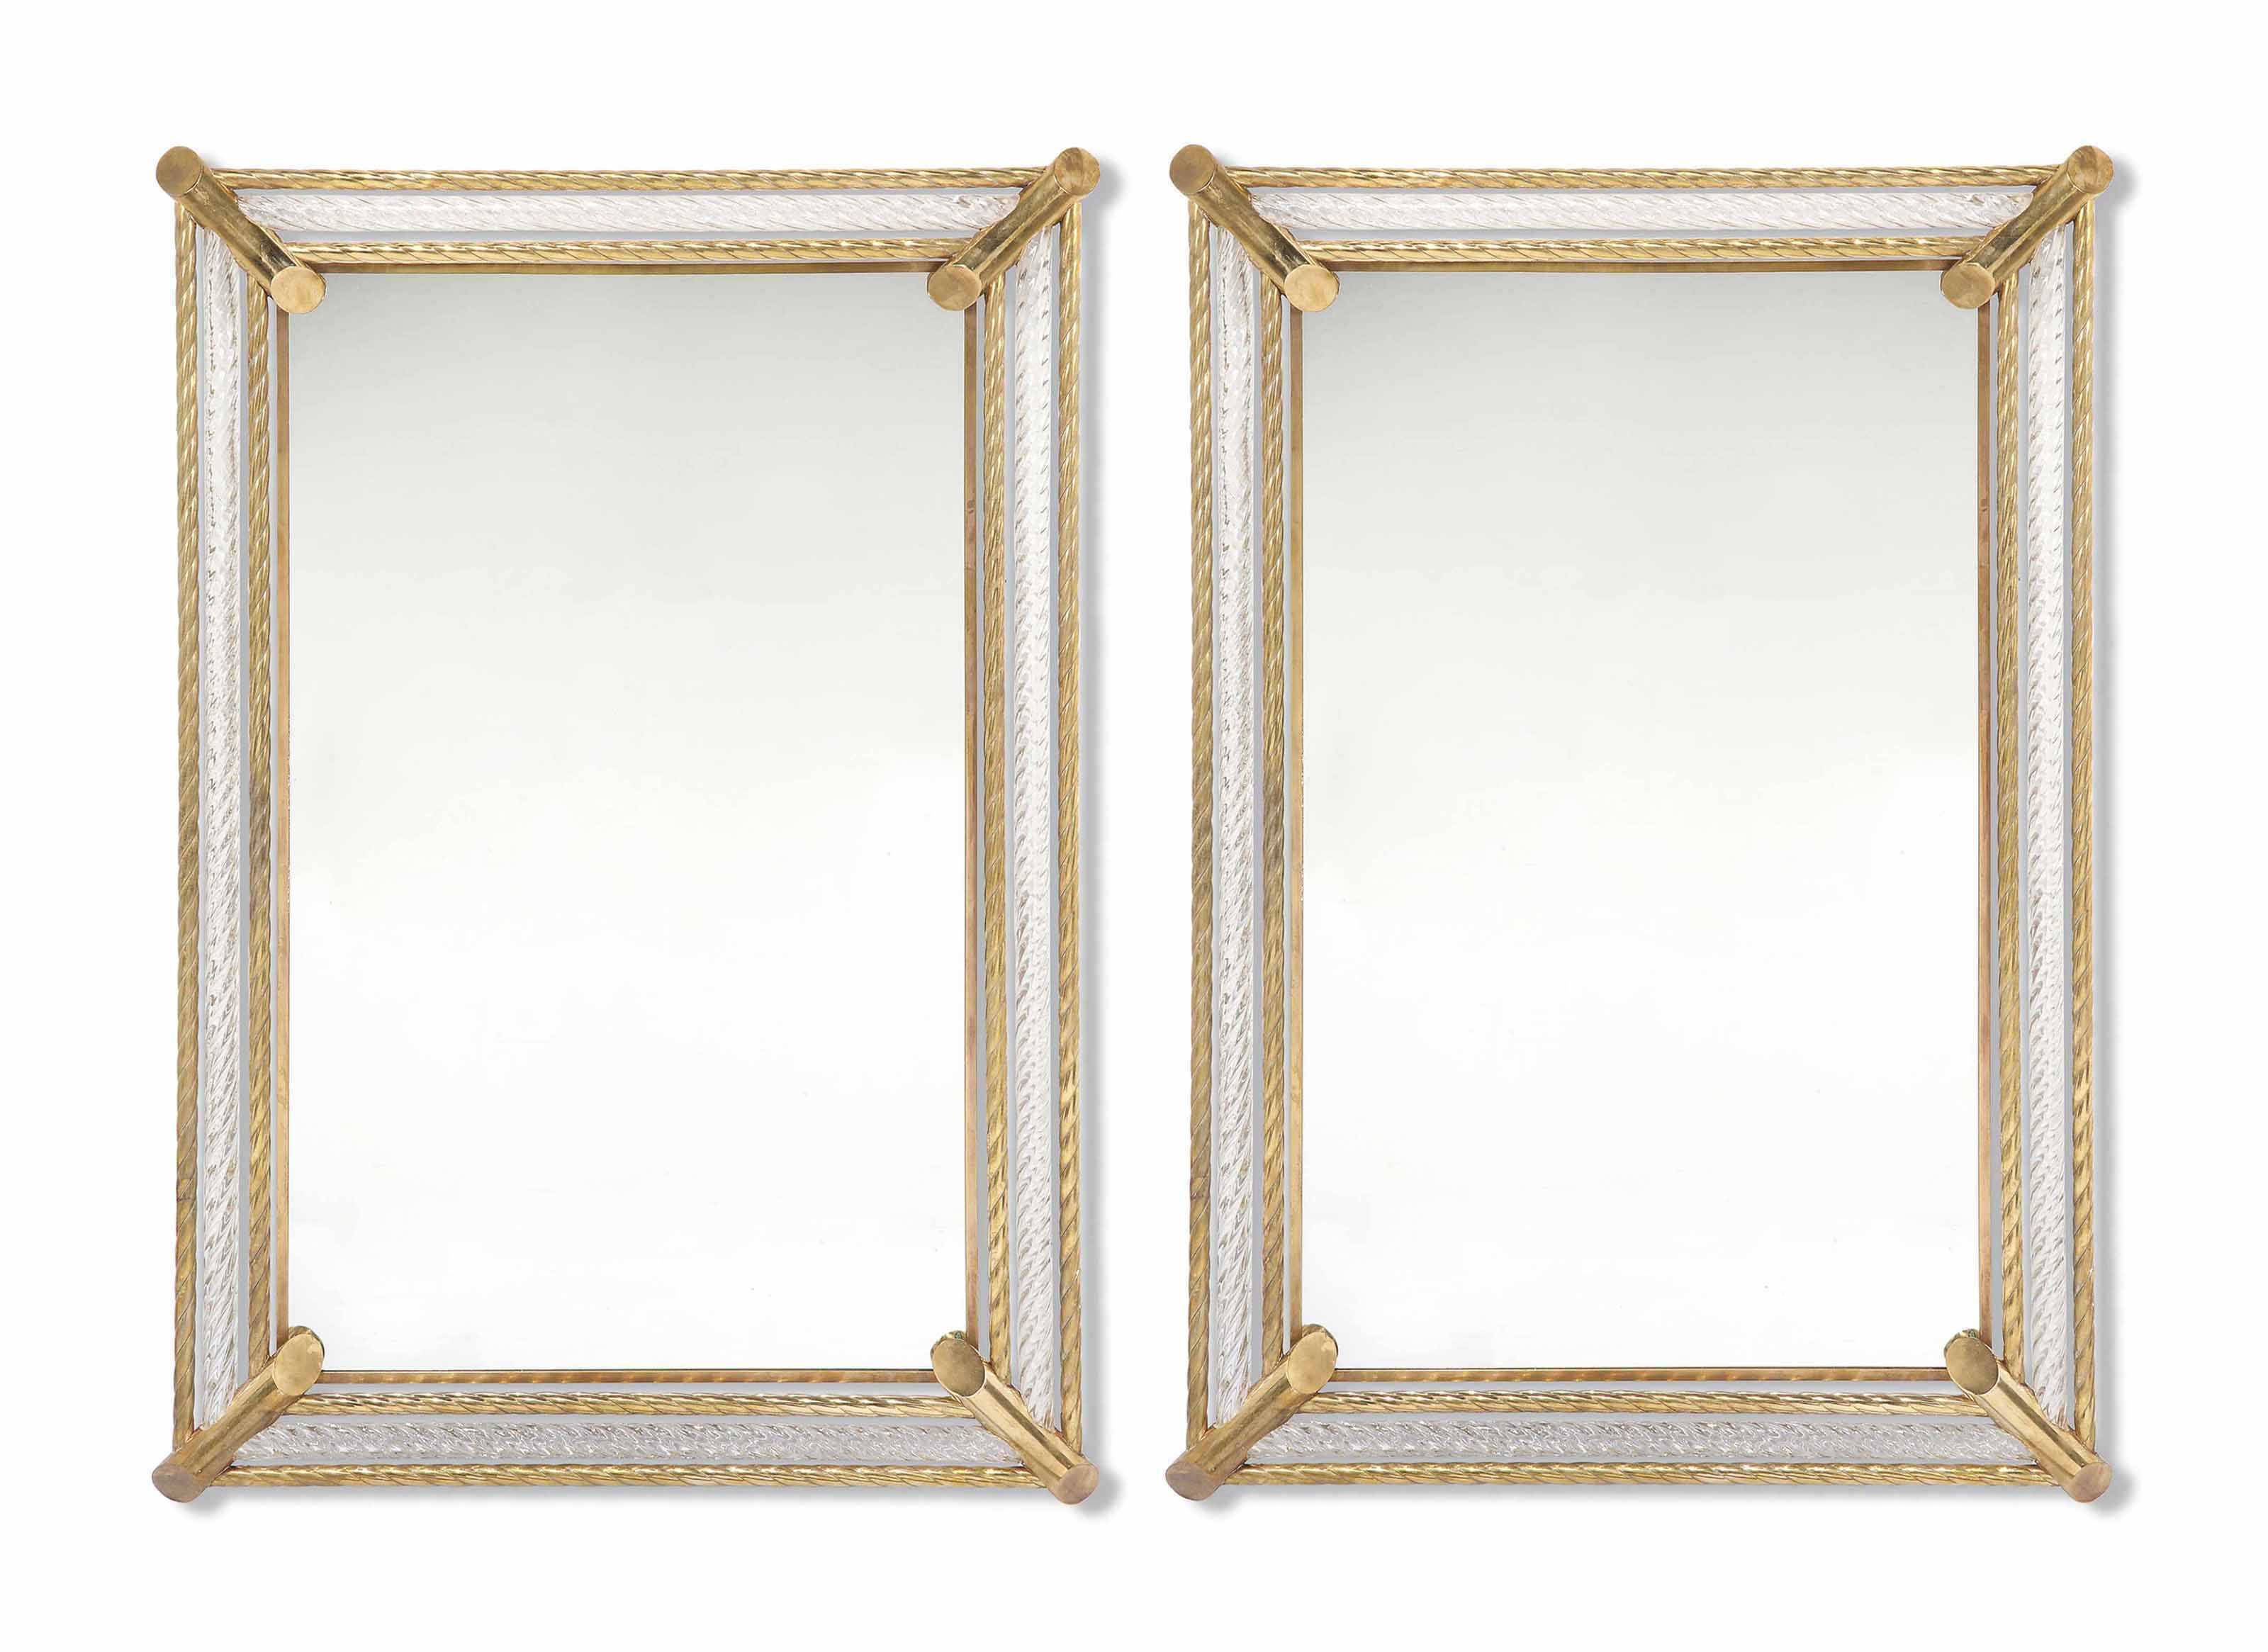 A PAIR OF BRASS AND GLASS MIRRORS